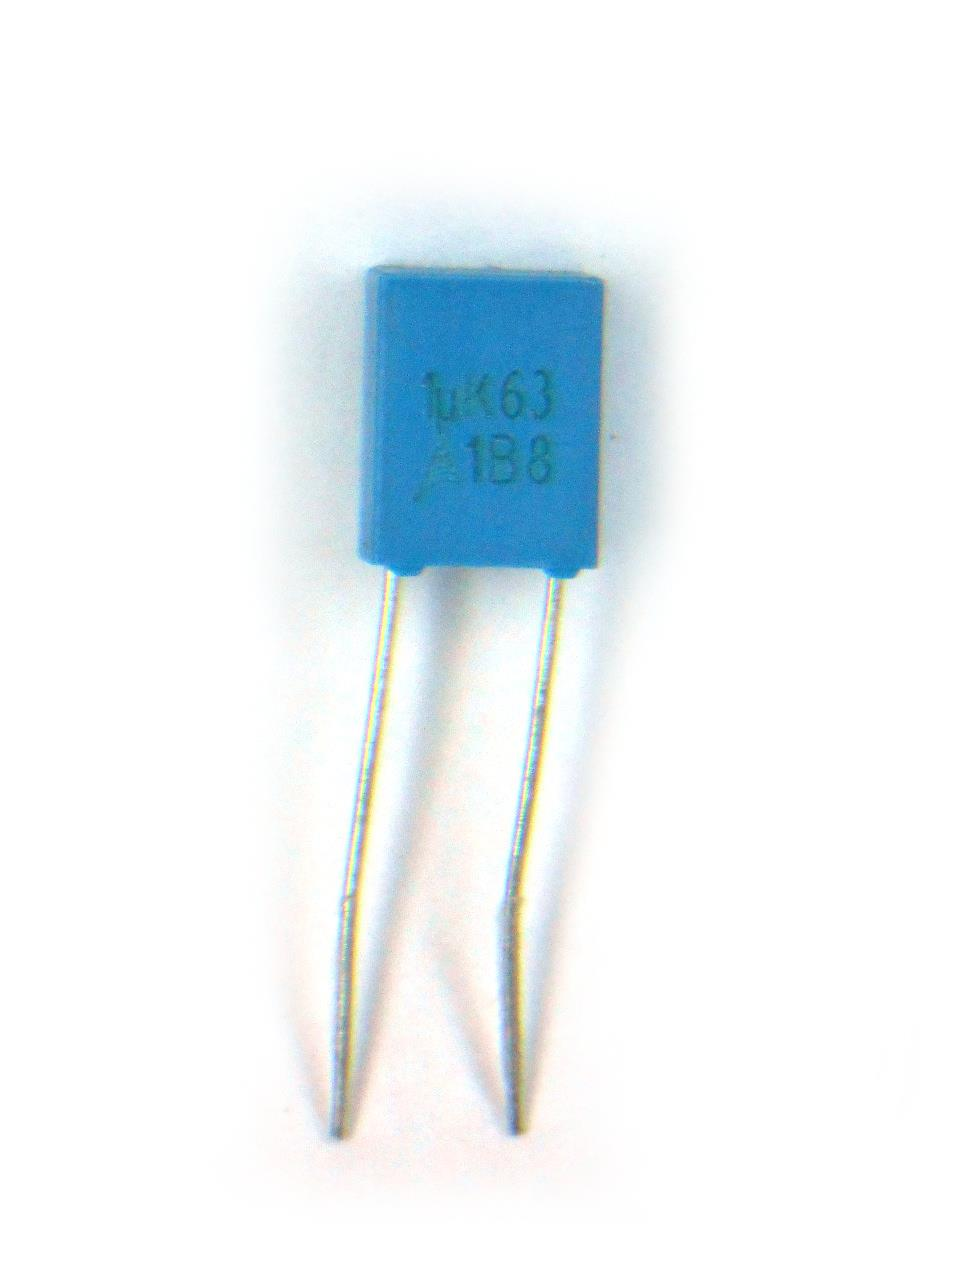 Capacitor Poliester 1uF x 63V